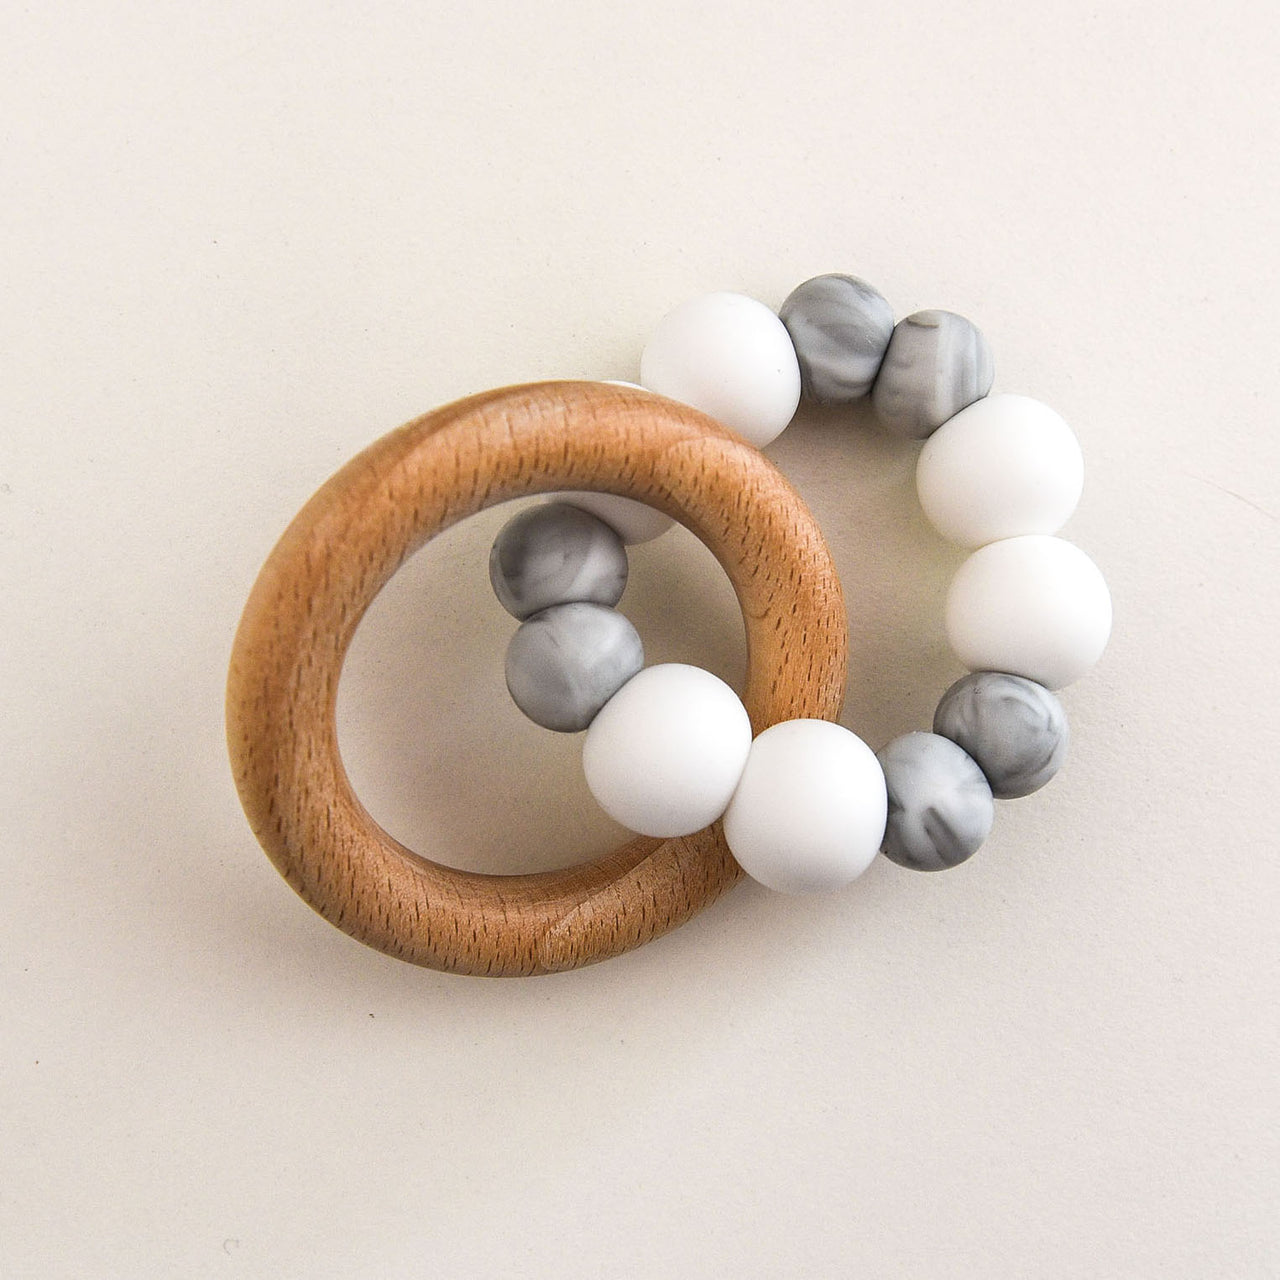 Duo Silicone and Beech Wood Teether - White and Grey